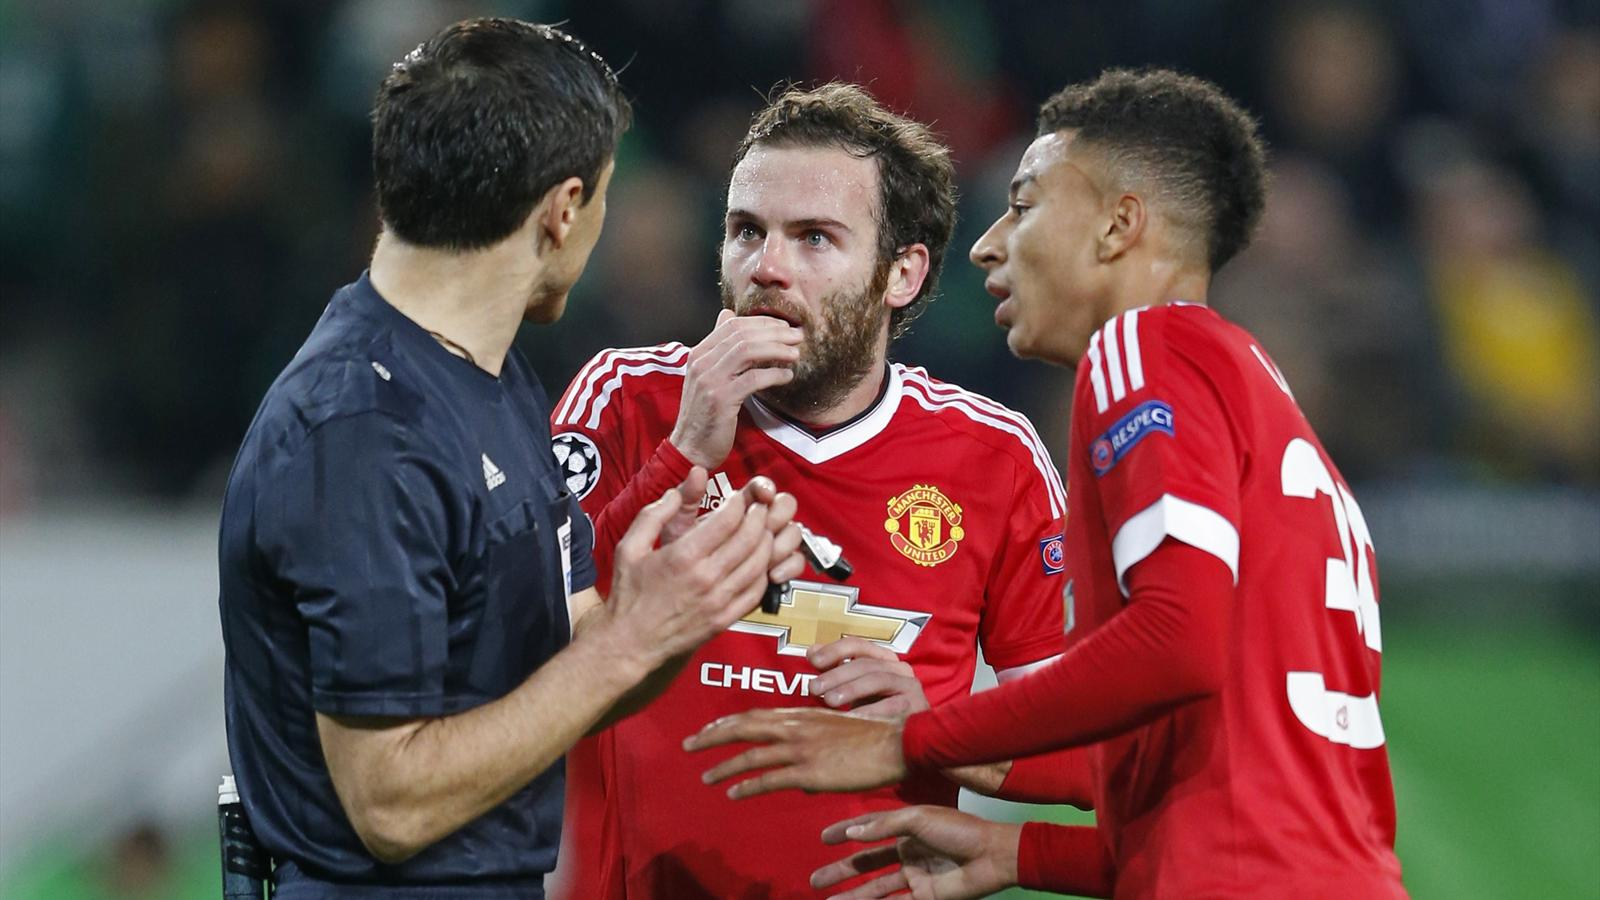 Manchester United's Jesse Lingard and Juan Mata remonstrate with referee Milorad Mazic after he disallowed a goal